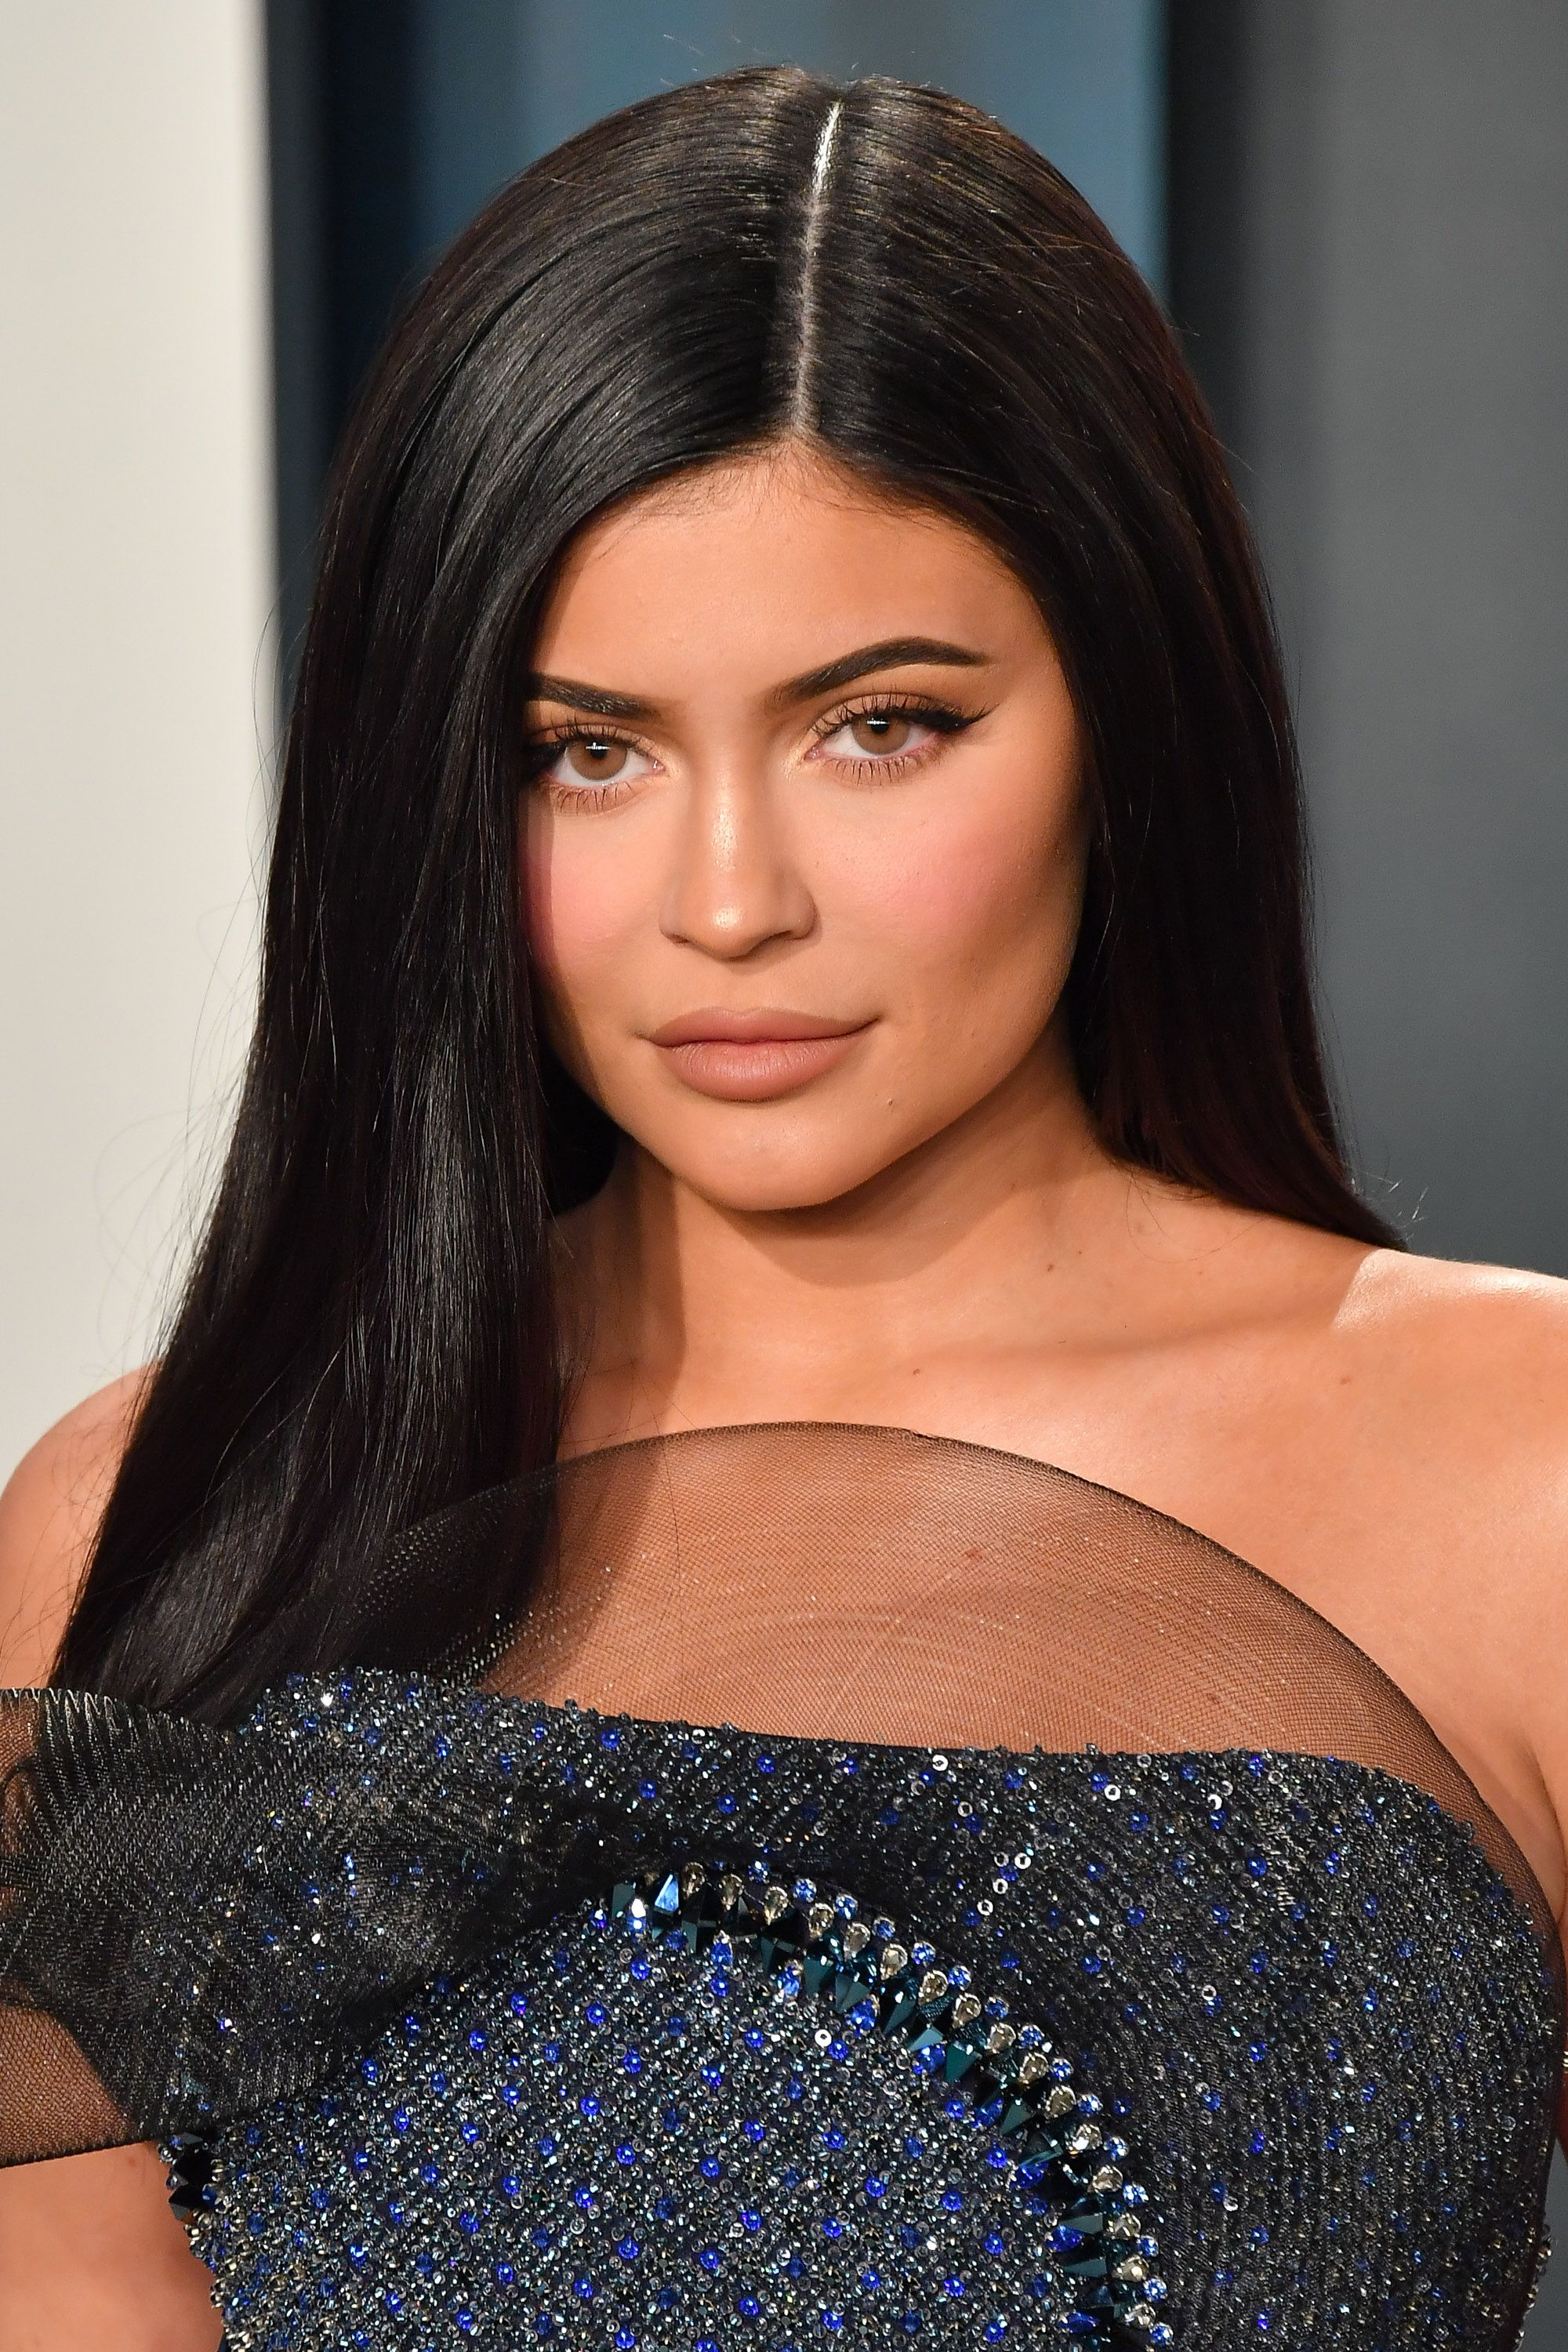 Kylie Jenner Just Cut All Her Hair Off